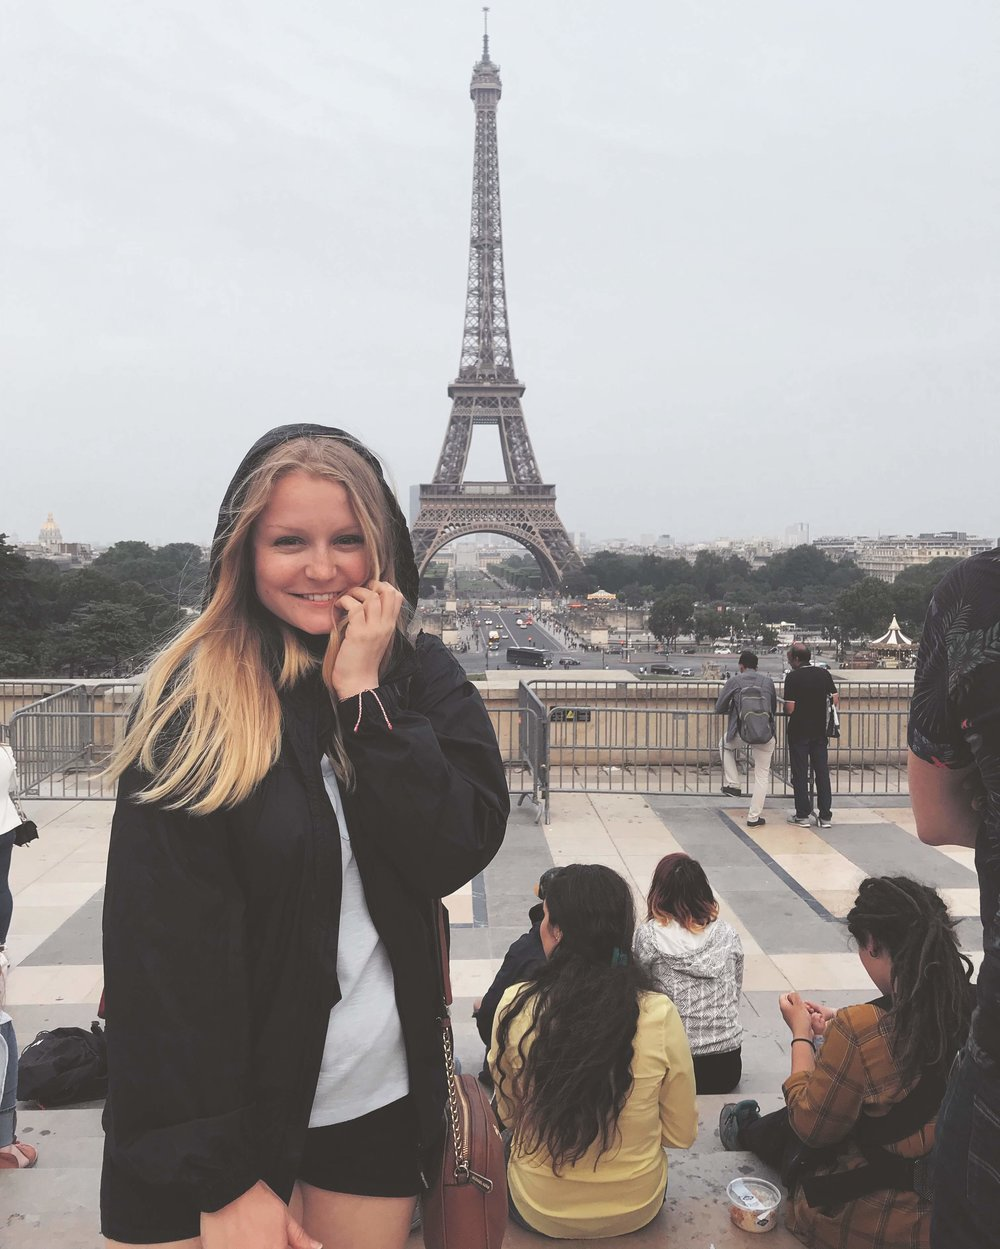 Here Ashton is posing in front of the Eiffel Tower making all of us jealous!